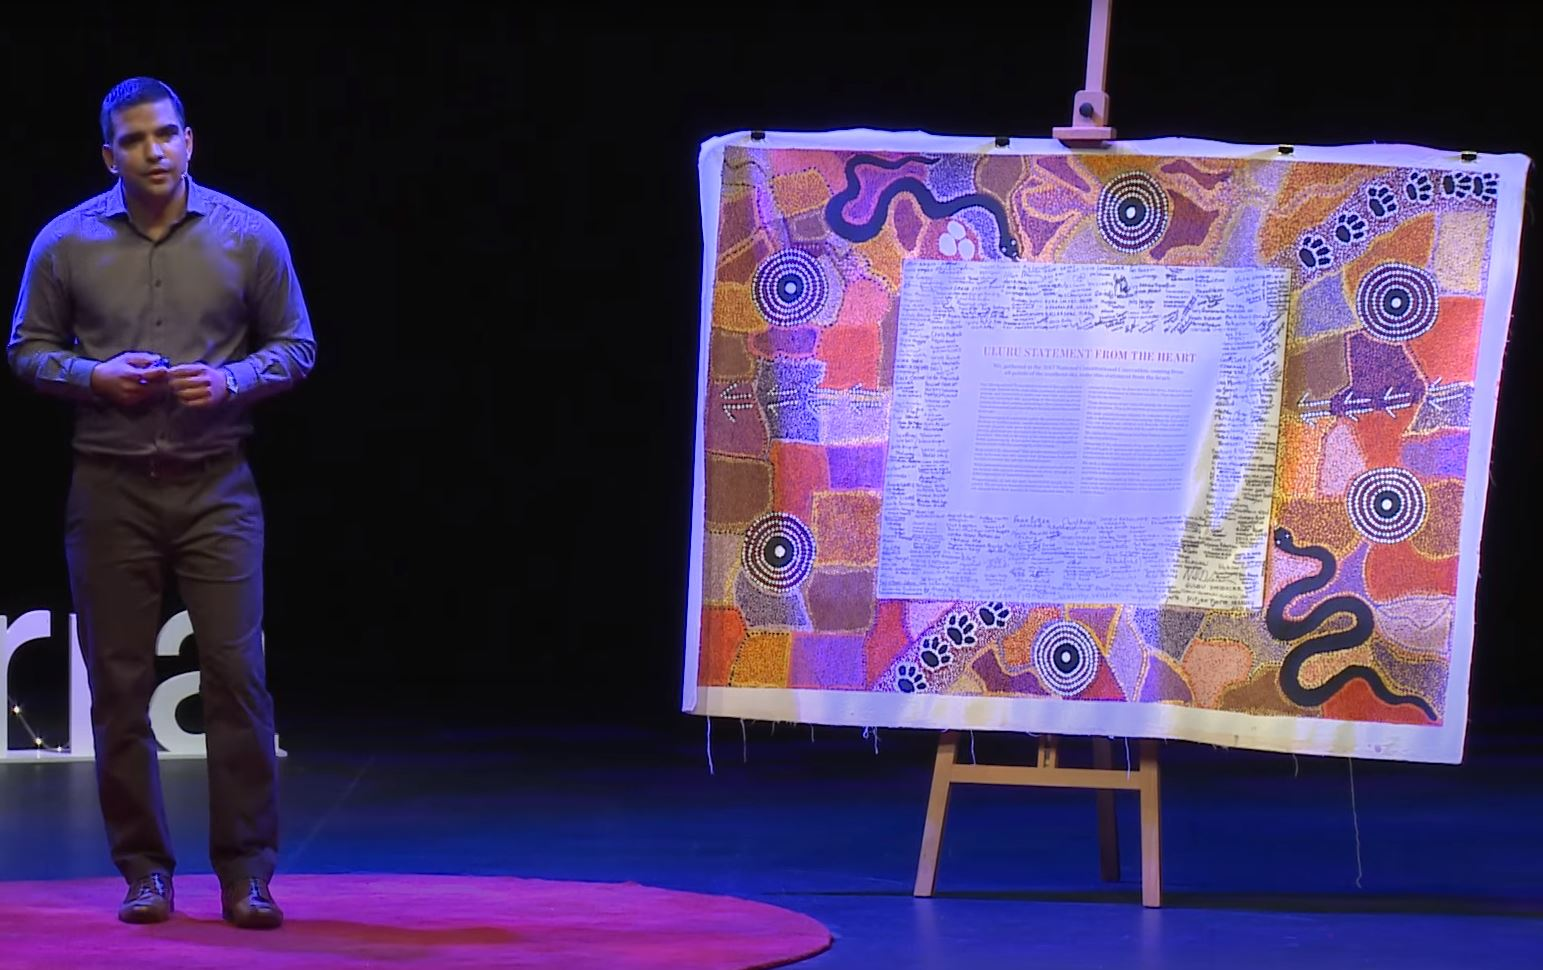 The Uluru Statement From The Heart - an idea whose time has come   Dean Parkin   TEDxCanberra